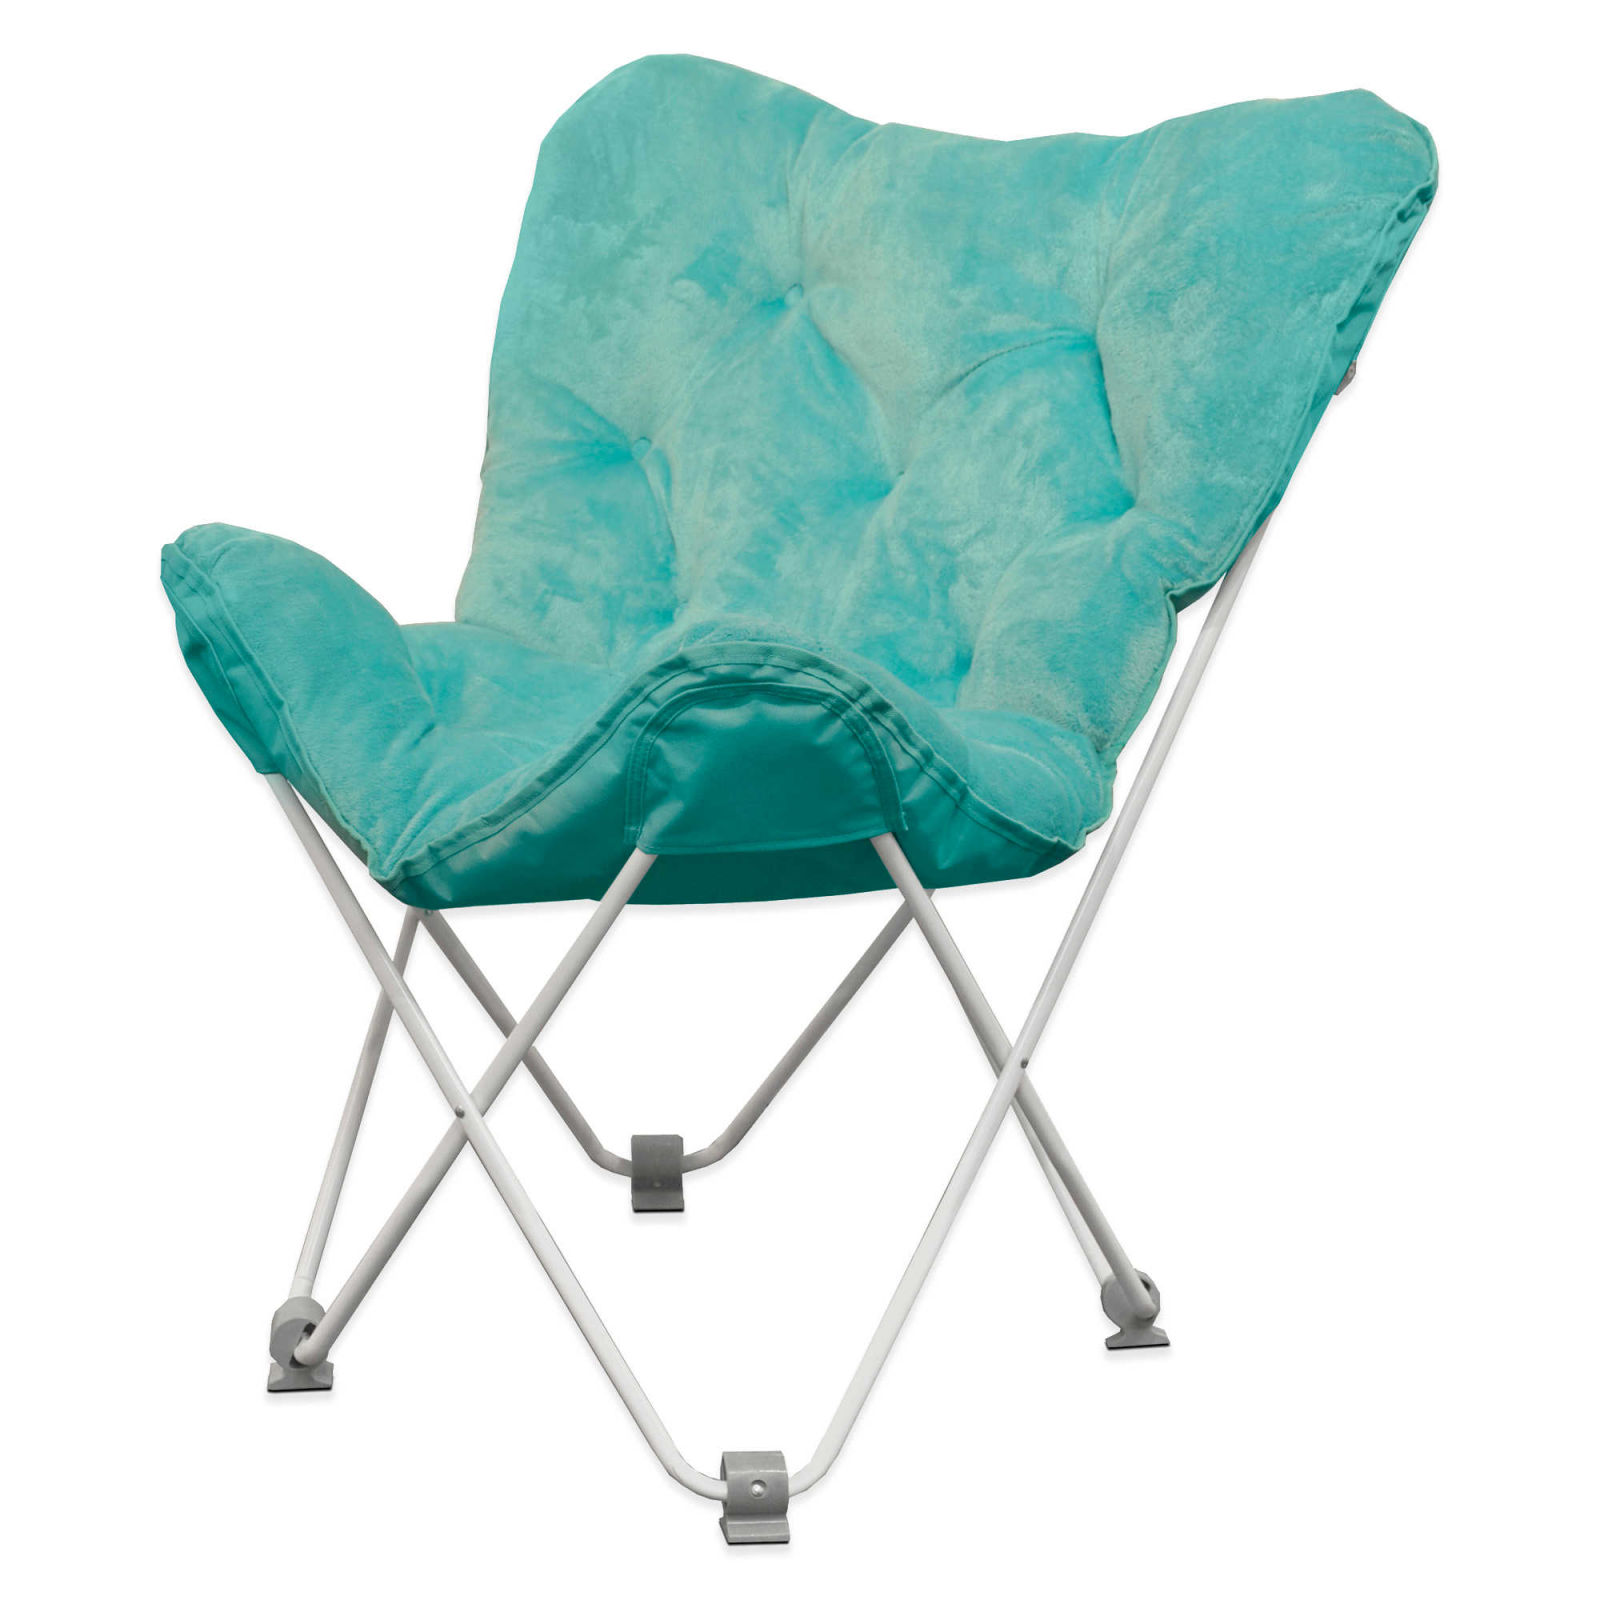 Fuzzy saucer chairs for adults